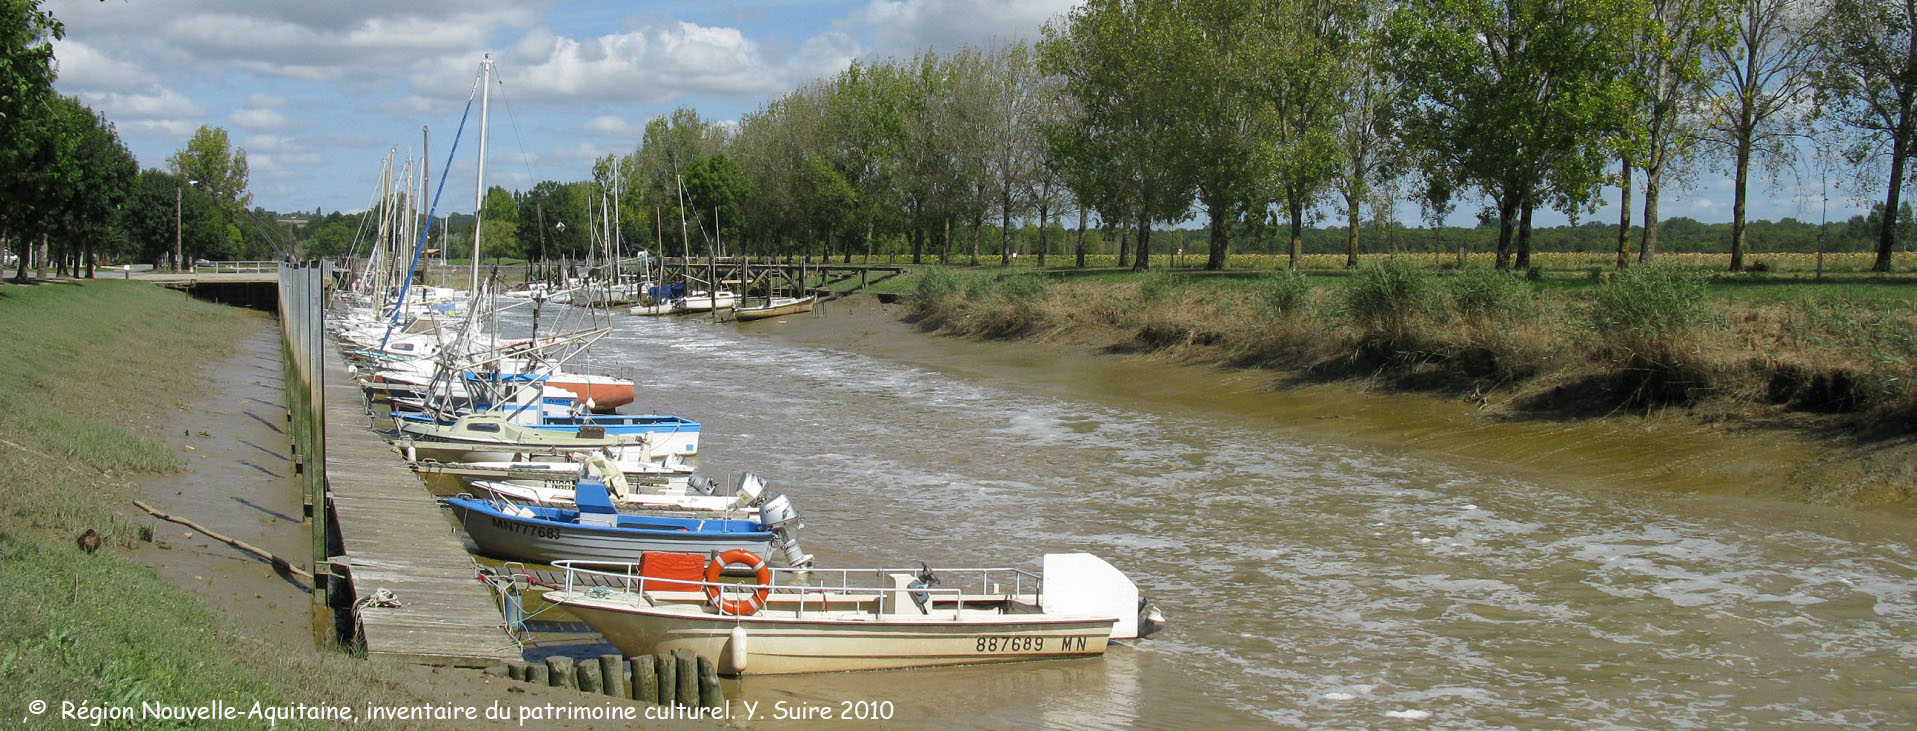 Port Maubert à Saint Fort sur Gironde